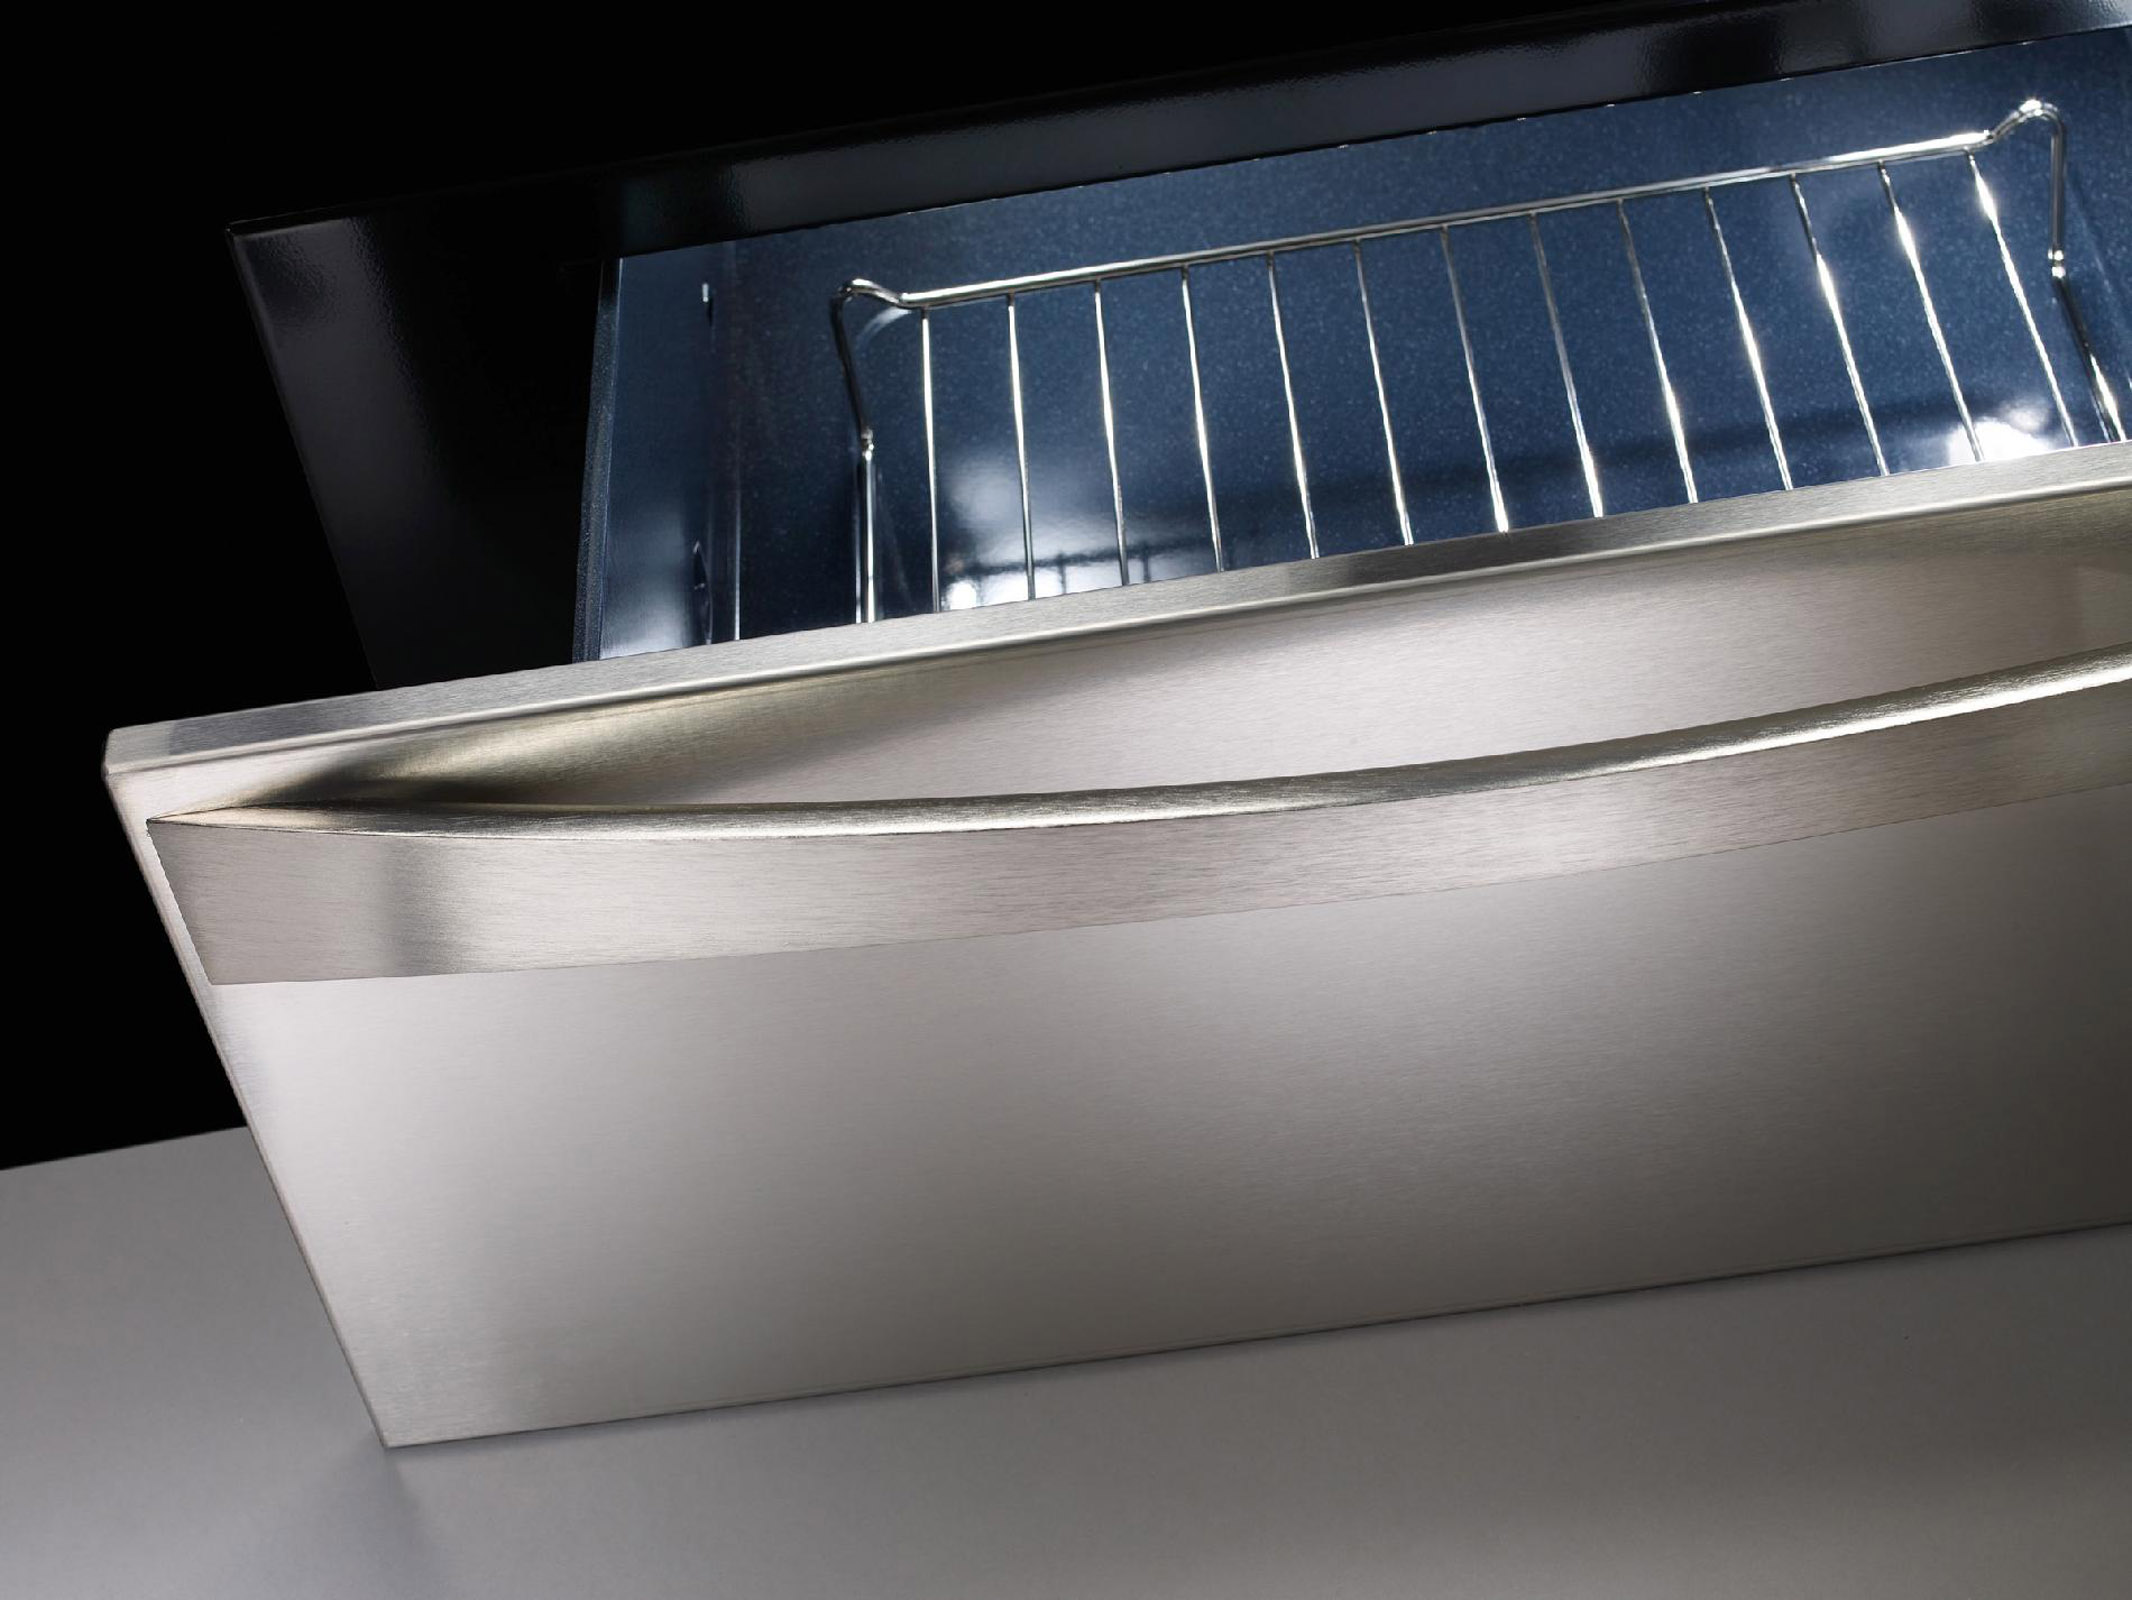 "Kenmore Elite 49990 30"" Warming Drawer - Stainless Steel"